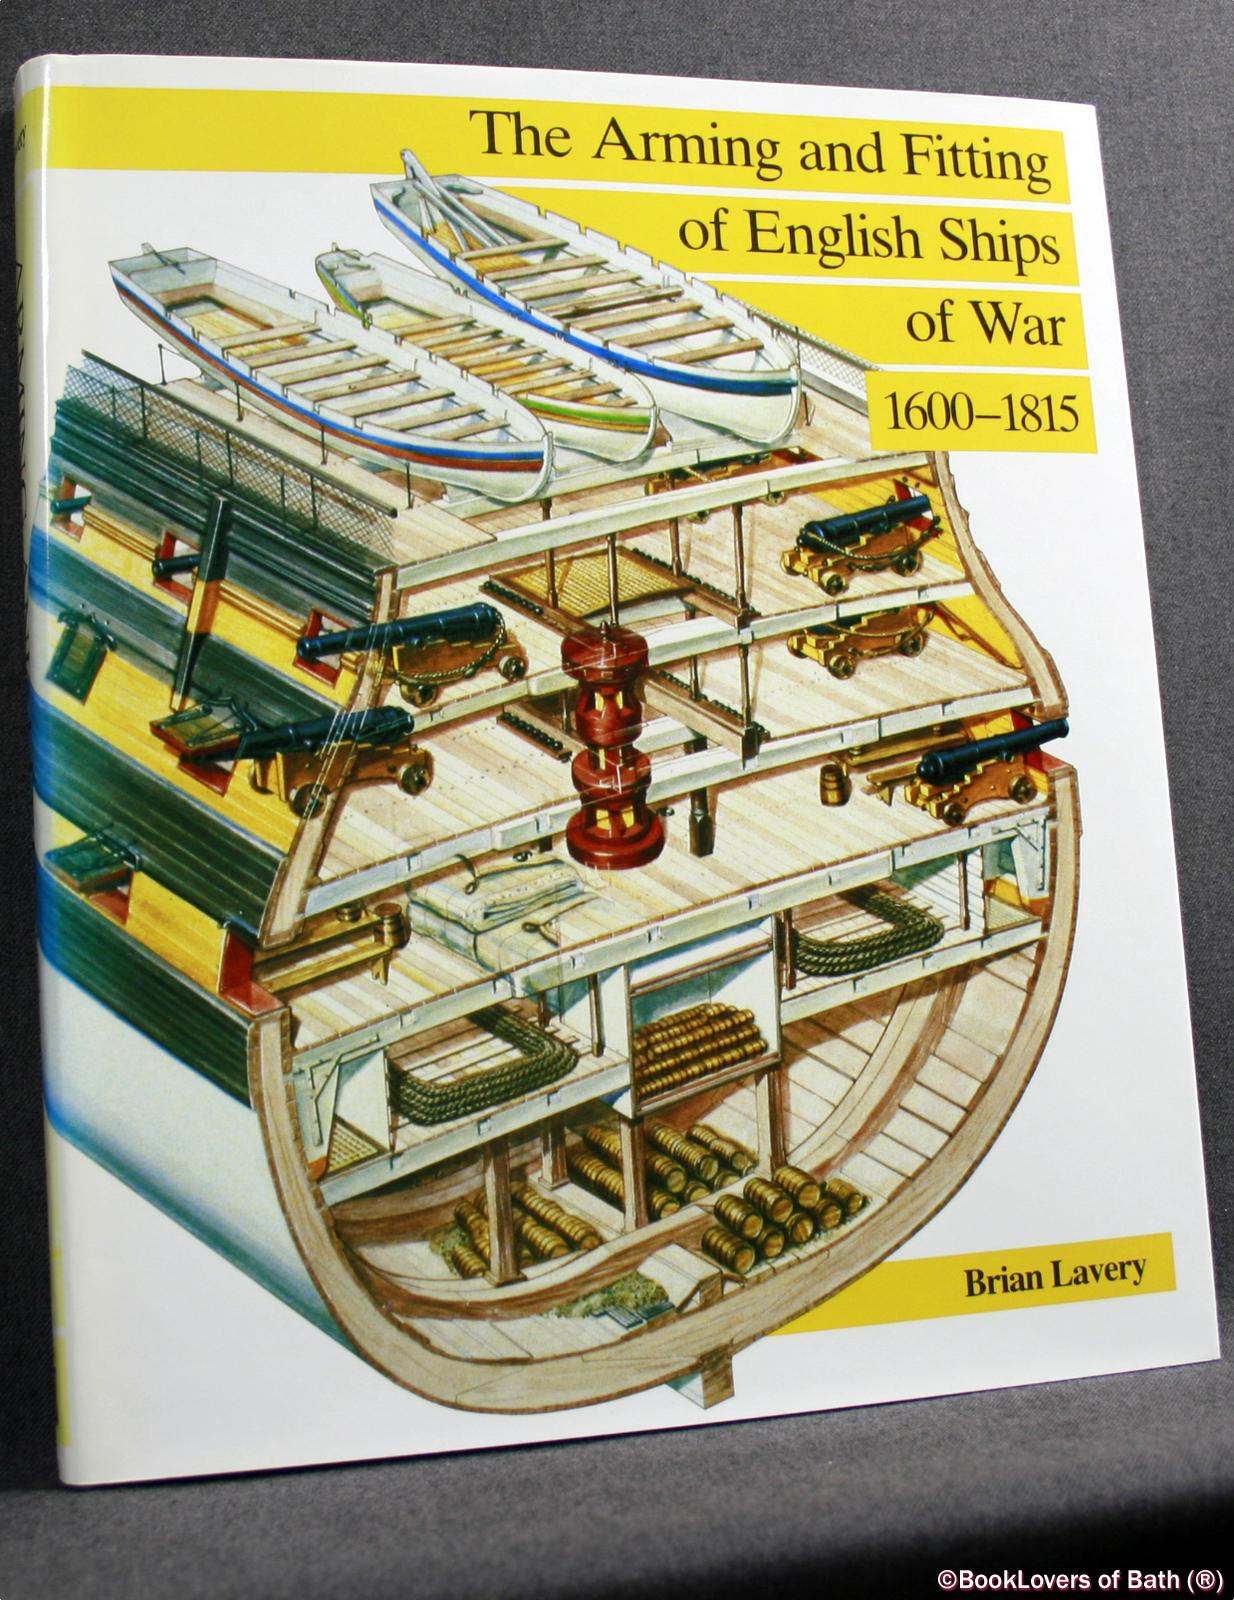 The Arming and Fitting of English Ships of War, 1600-1815  - Brian Lavery